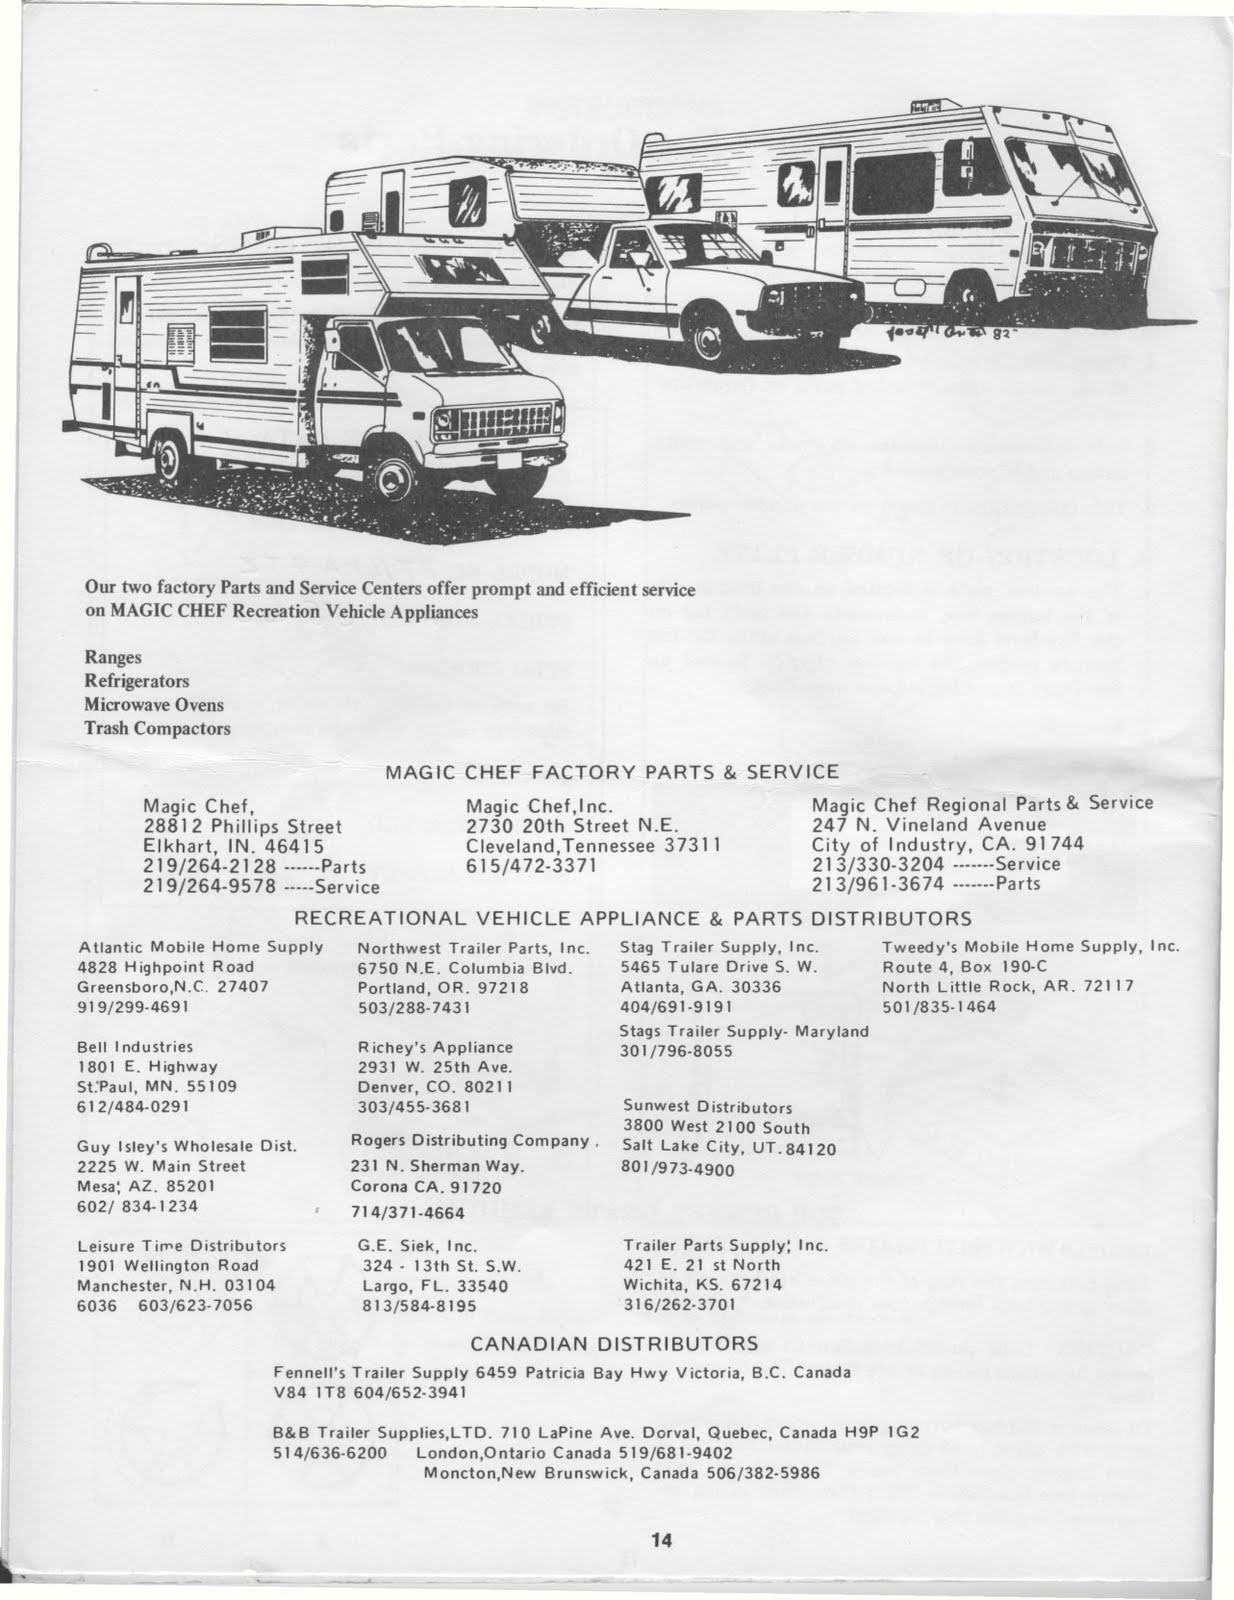 1983 fleetwood pace arrow owners manuals magic chef rv stove manual magic chef rv stove manual